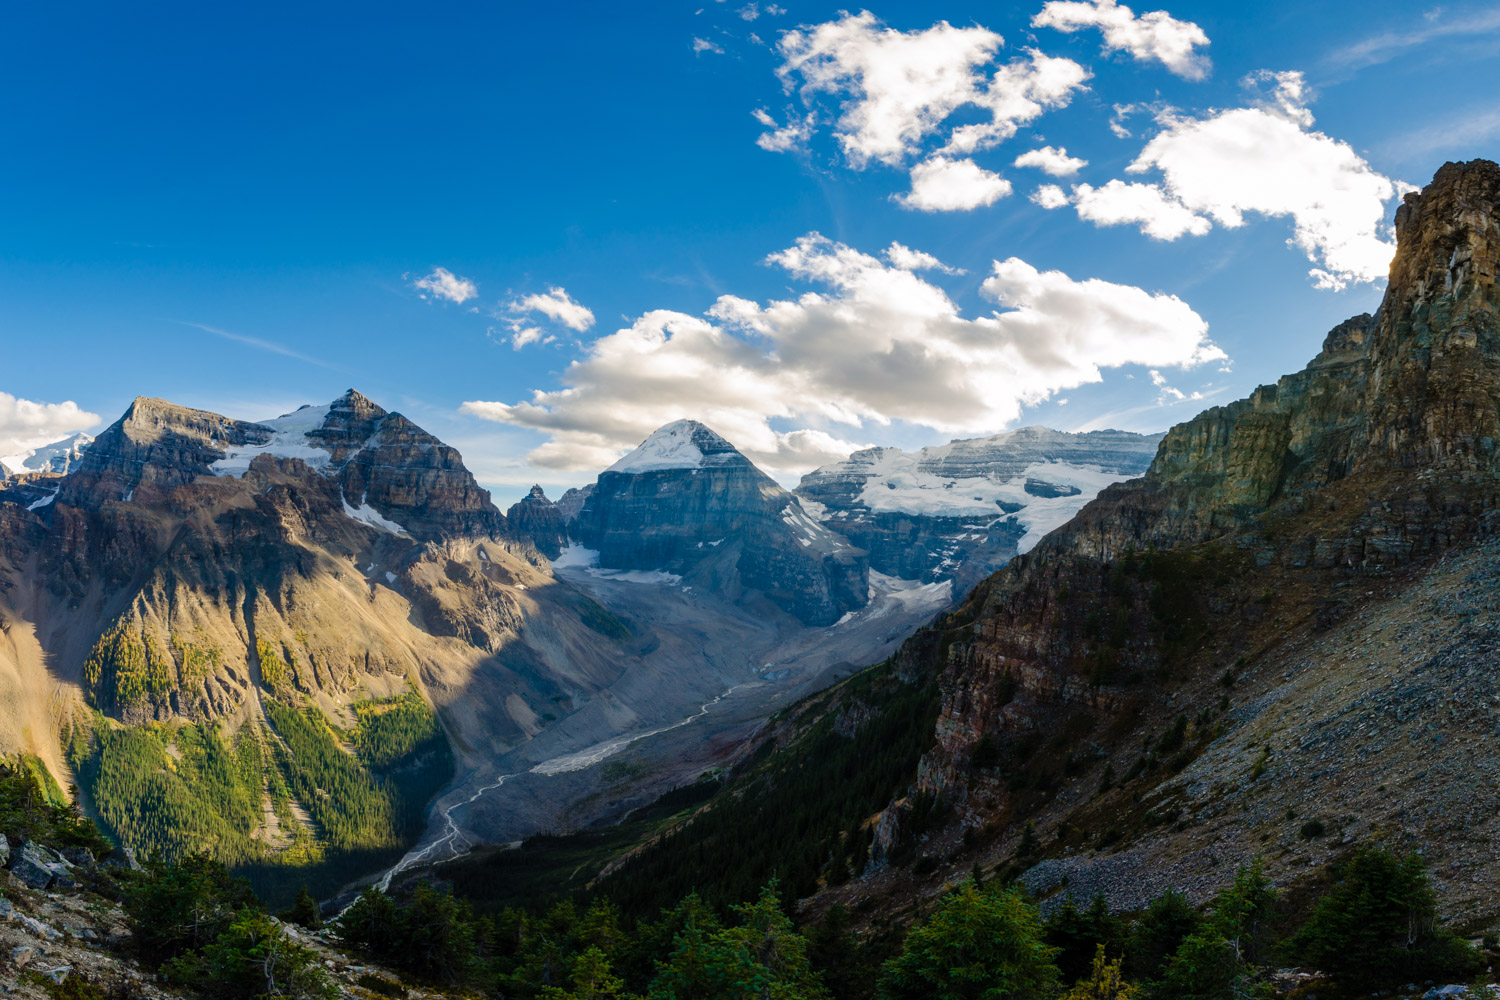 At the top of Devil's Thumb, looking down over the Plain of Six Glaciers.